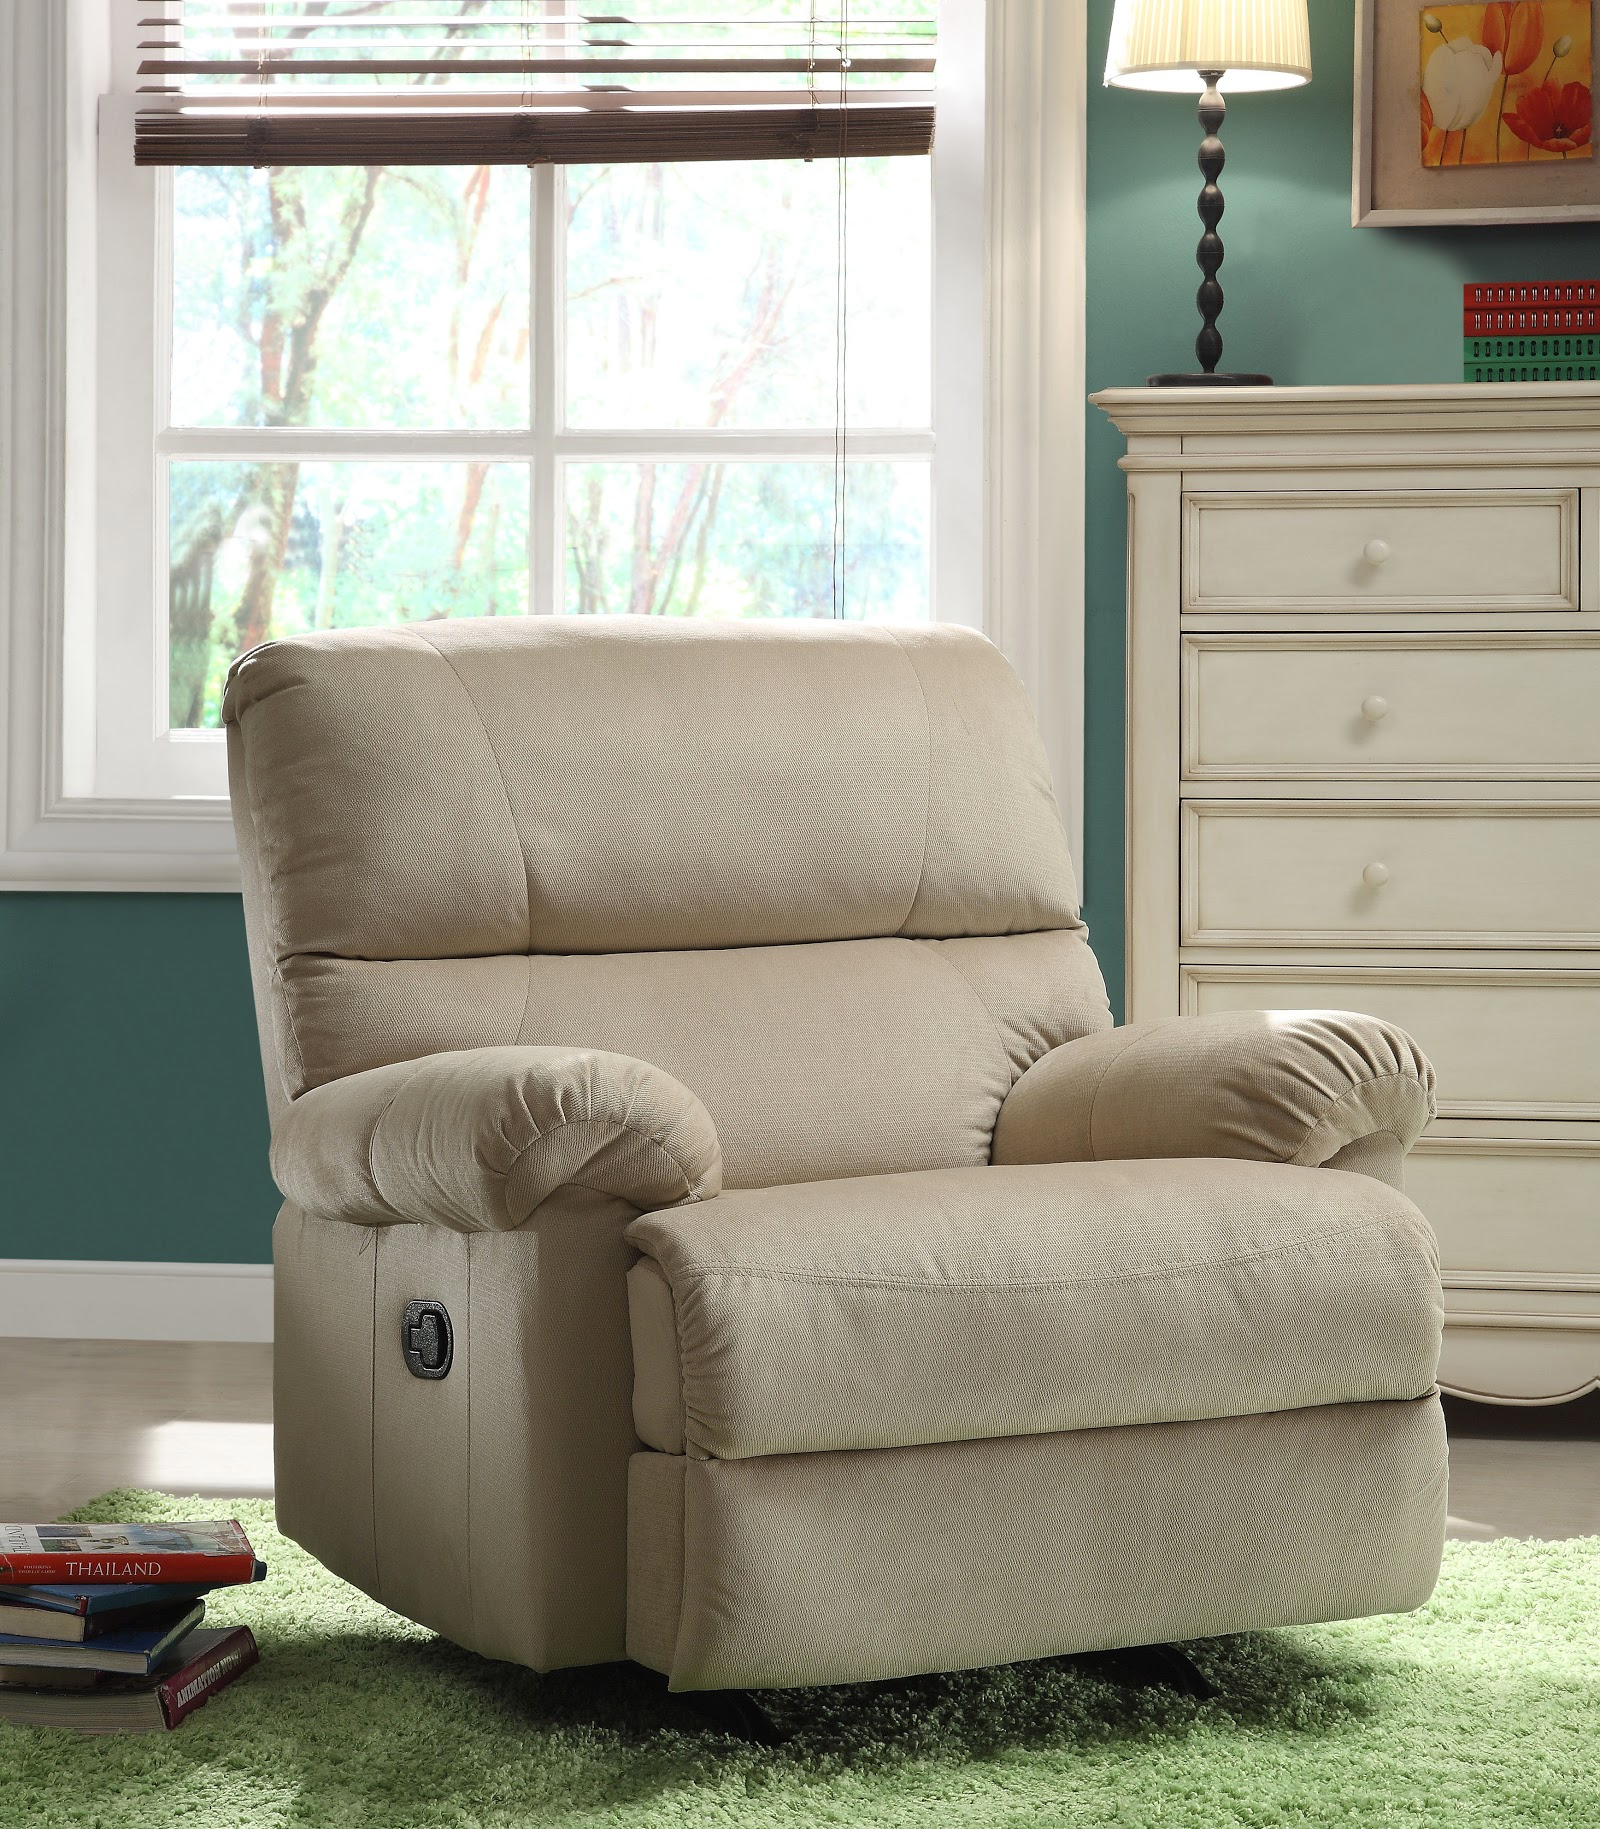 Image of: Rocker Recliner Nursery